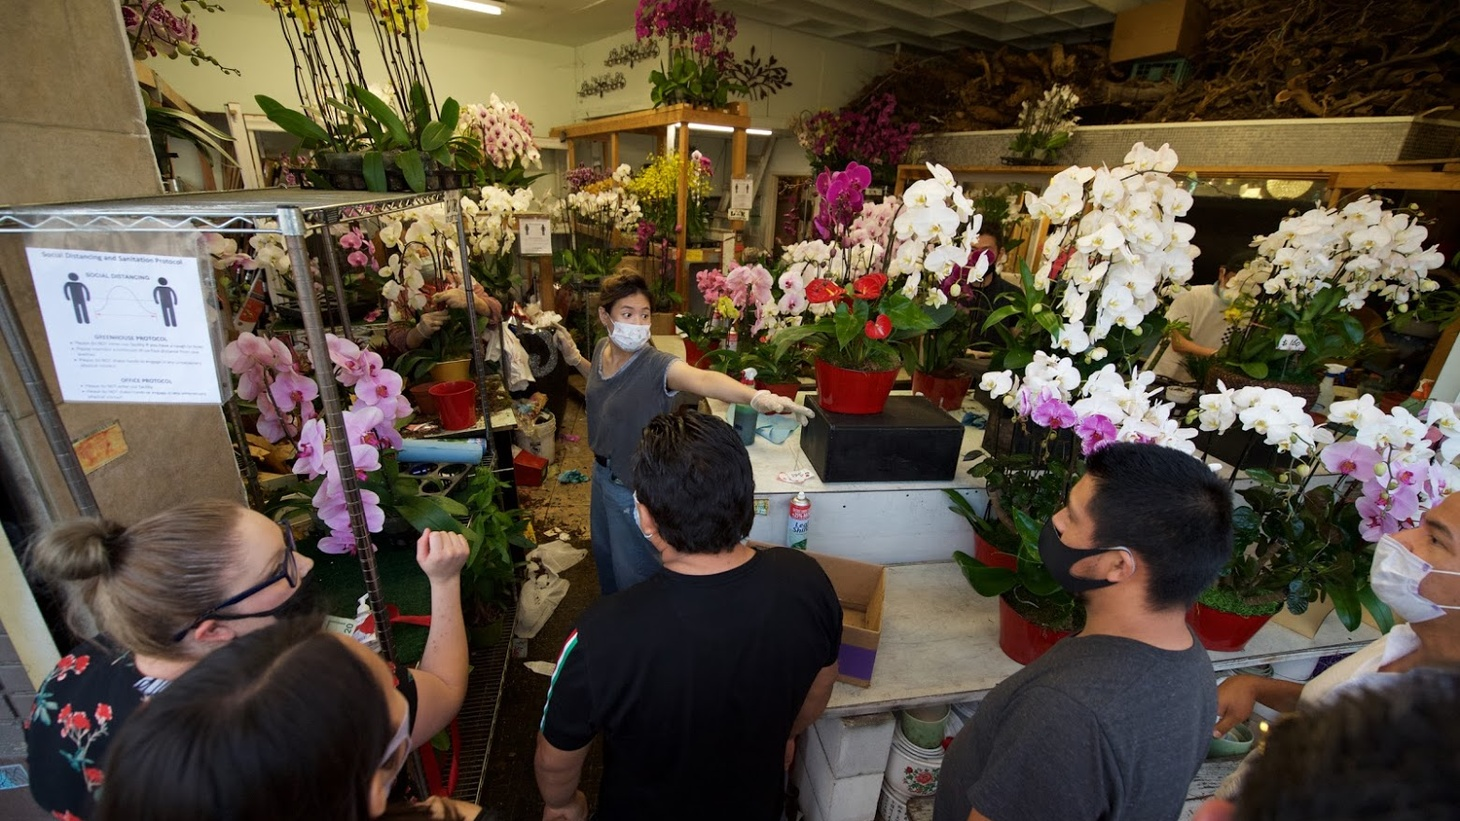 Mother's Day 2020 at the LA Flower Market.